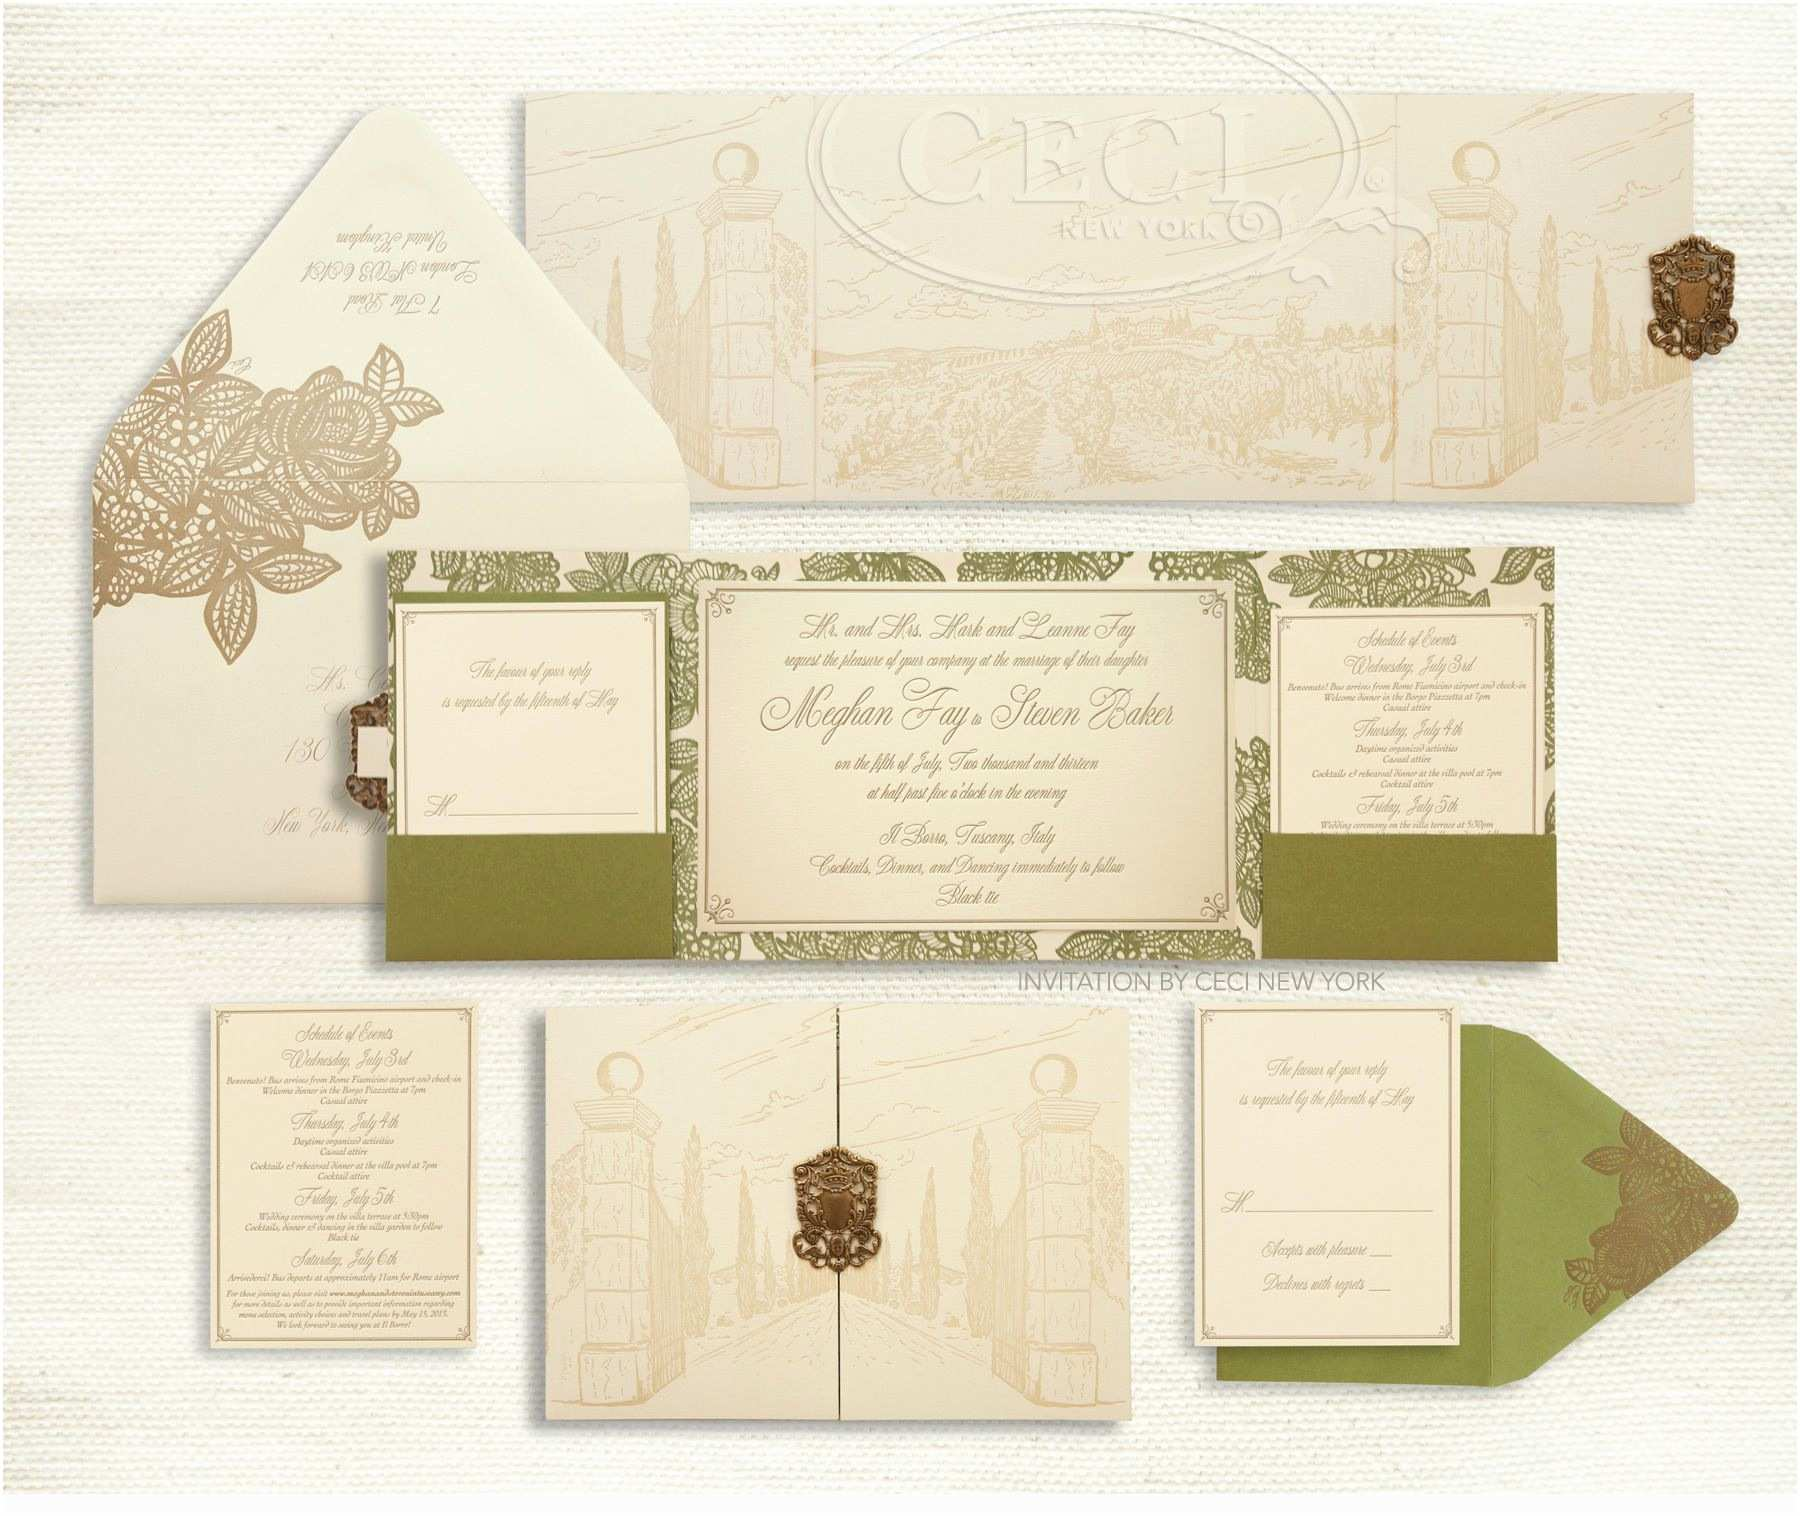 Italian themed Wedding Invitations Luxury Wedding Invitations by Ceci New York Our Muse